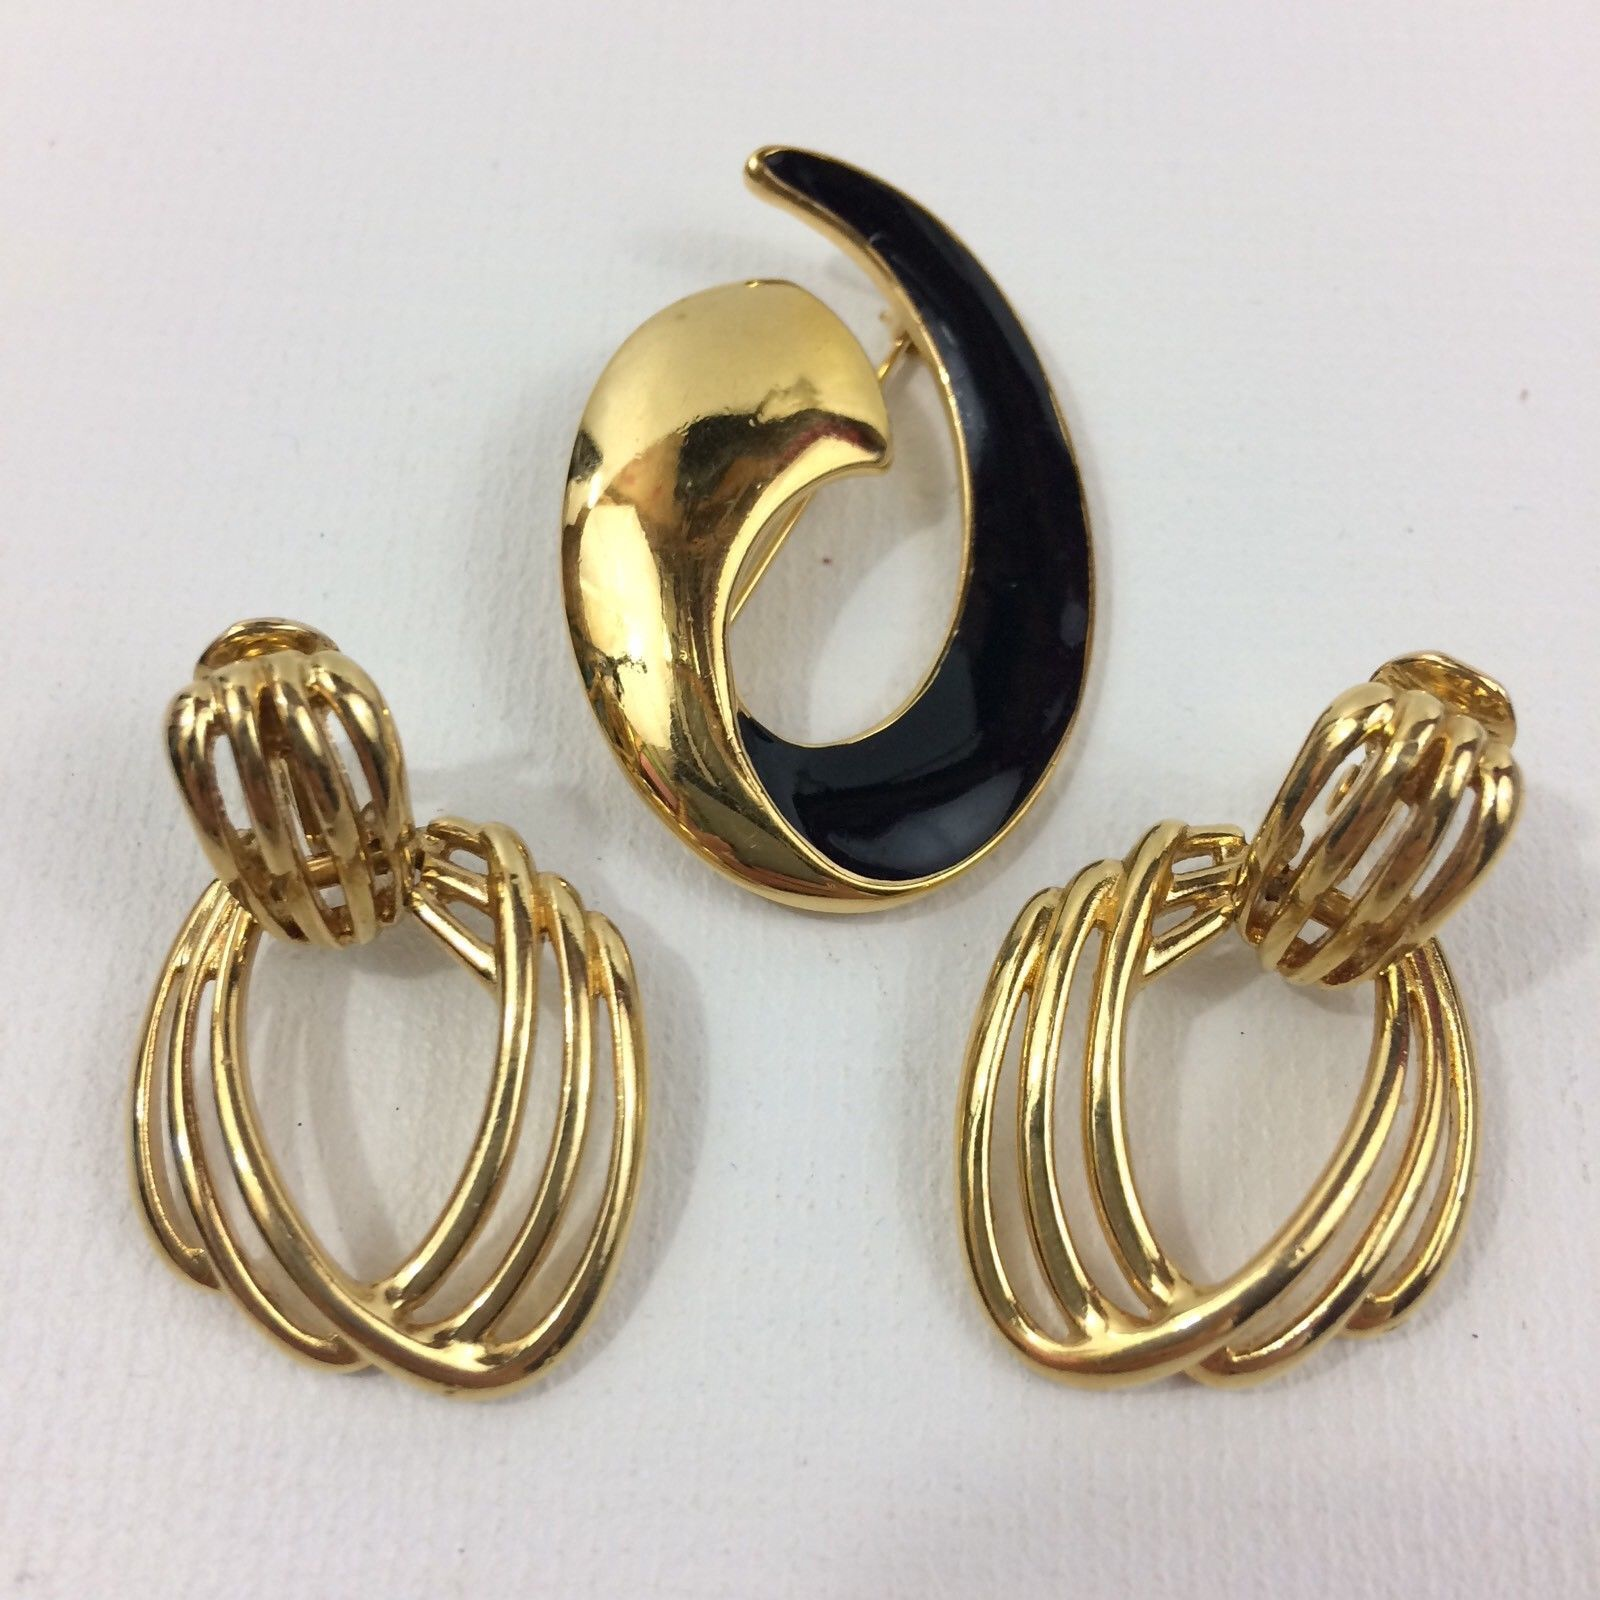 S L1600 Previous Vintage Monet Brooch Clip On Earrings Costume Jewelry Gold Tone Black Enamel